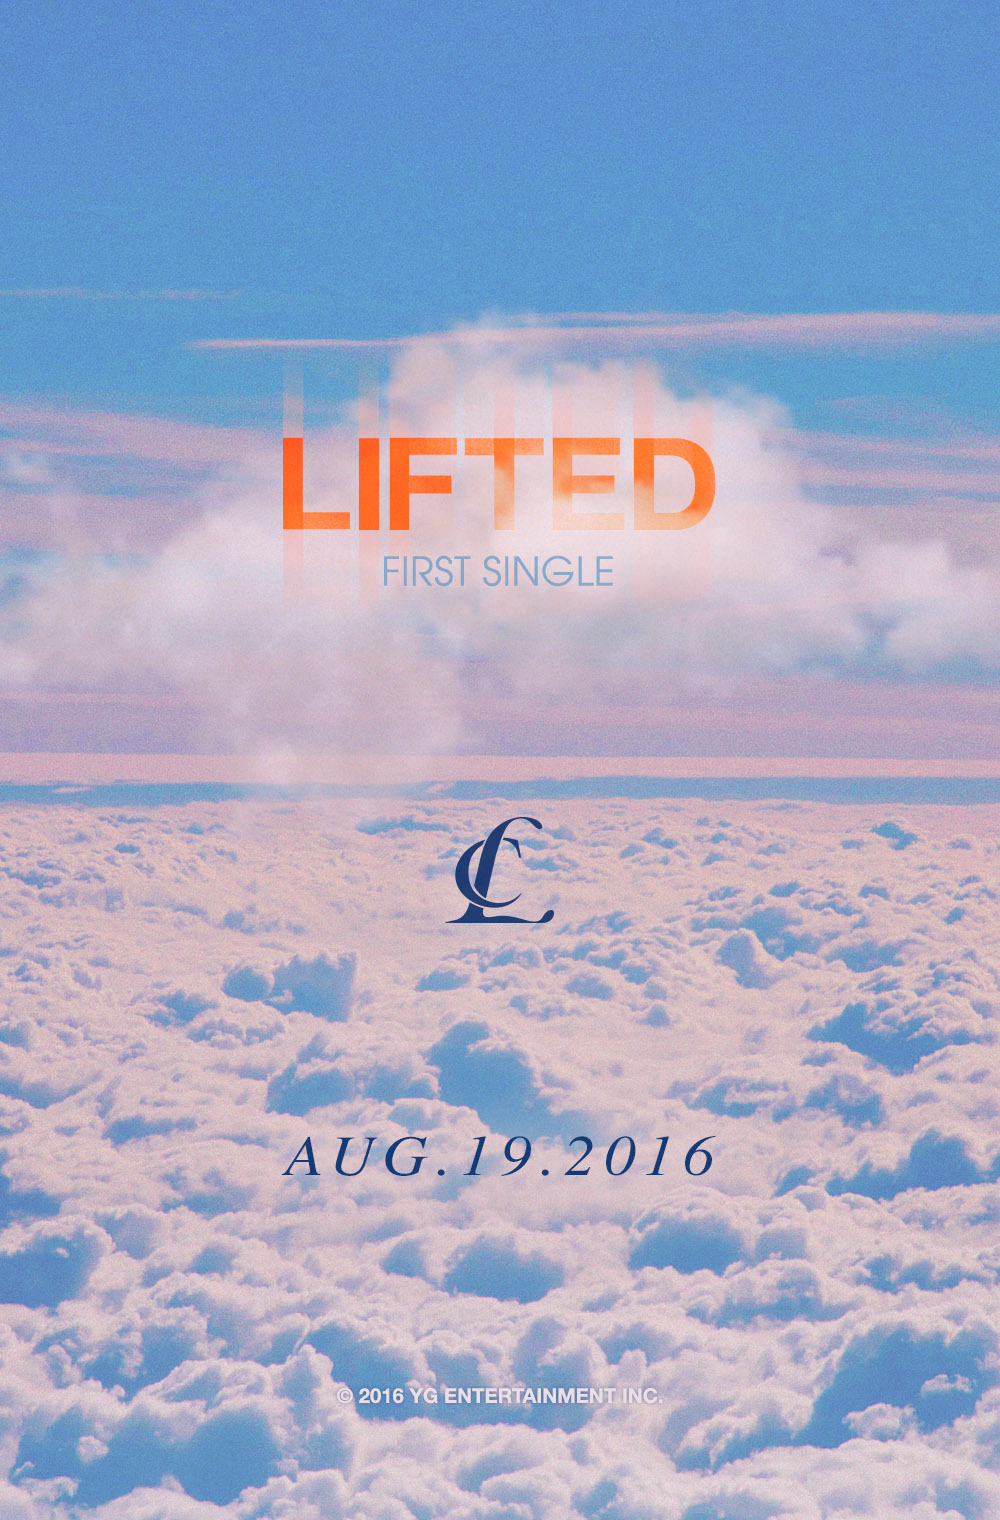 CL To Release Debut American Single